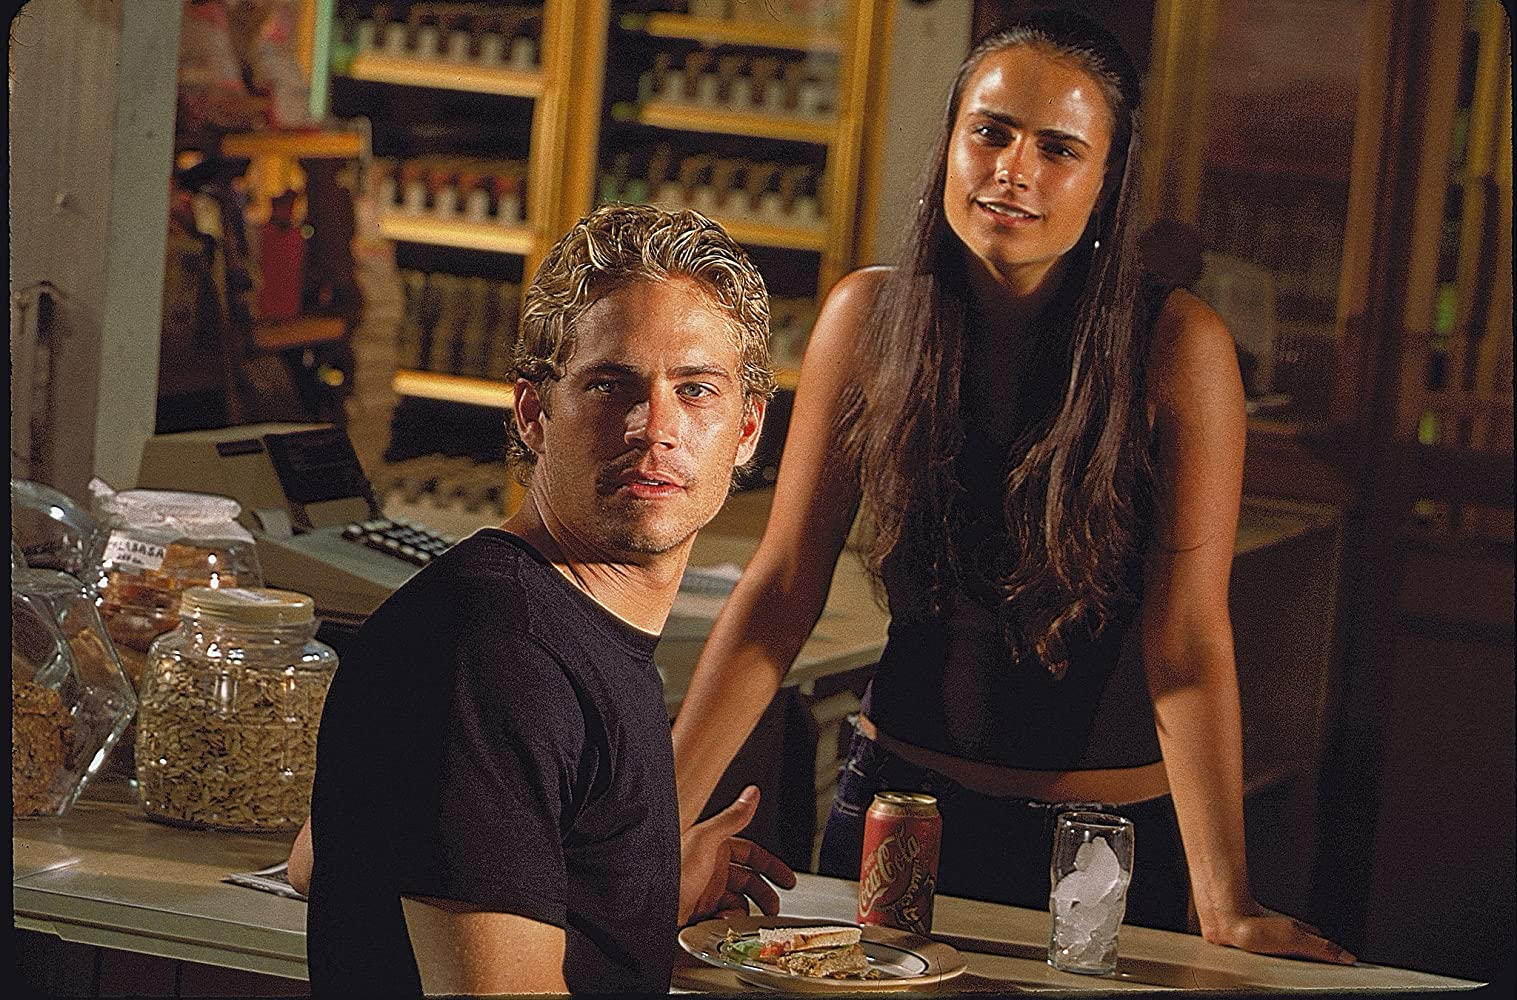 Jordana Brewster and Paul Walker in The Fast and the Furious (2001)